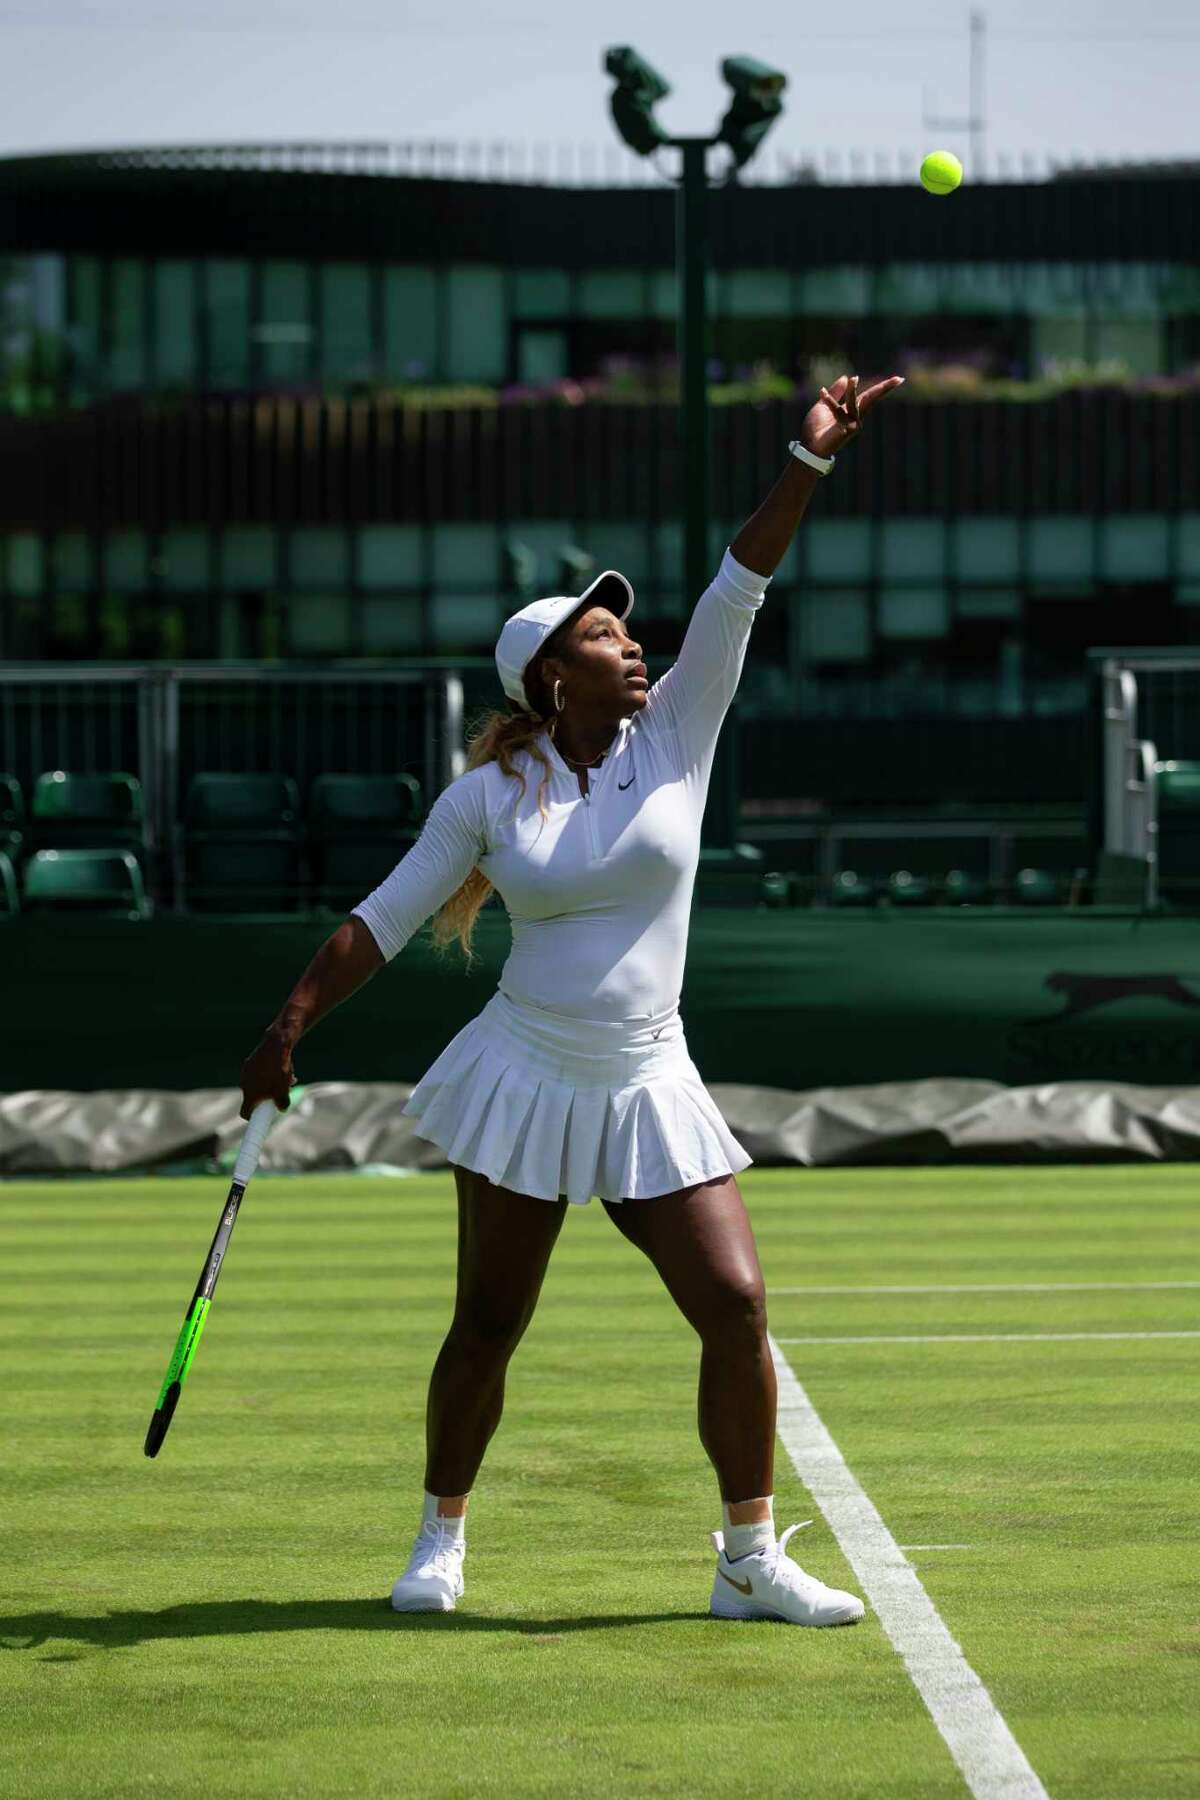 Serena Williams of USA serves during a training session at the All England Lawn Tennis Championships in Wimbledon, London, on Friday, June 28, 2019. The Wimbledon Tennis Championships 2019 will be held in London from July 1 to July 14. (Peter Klaunzer/Keystone via AP)